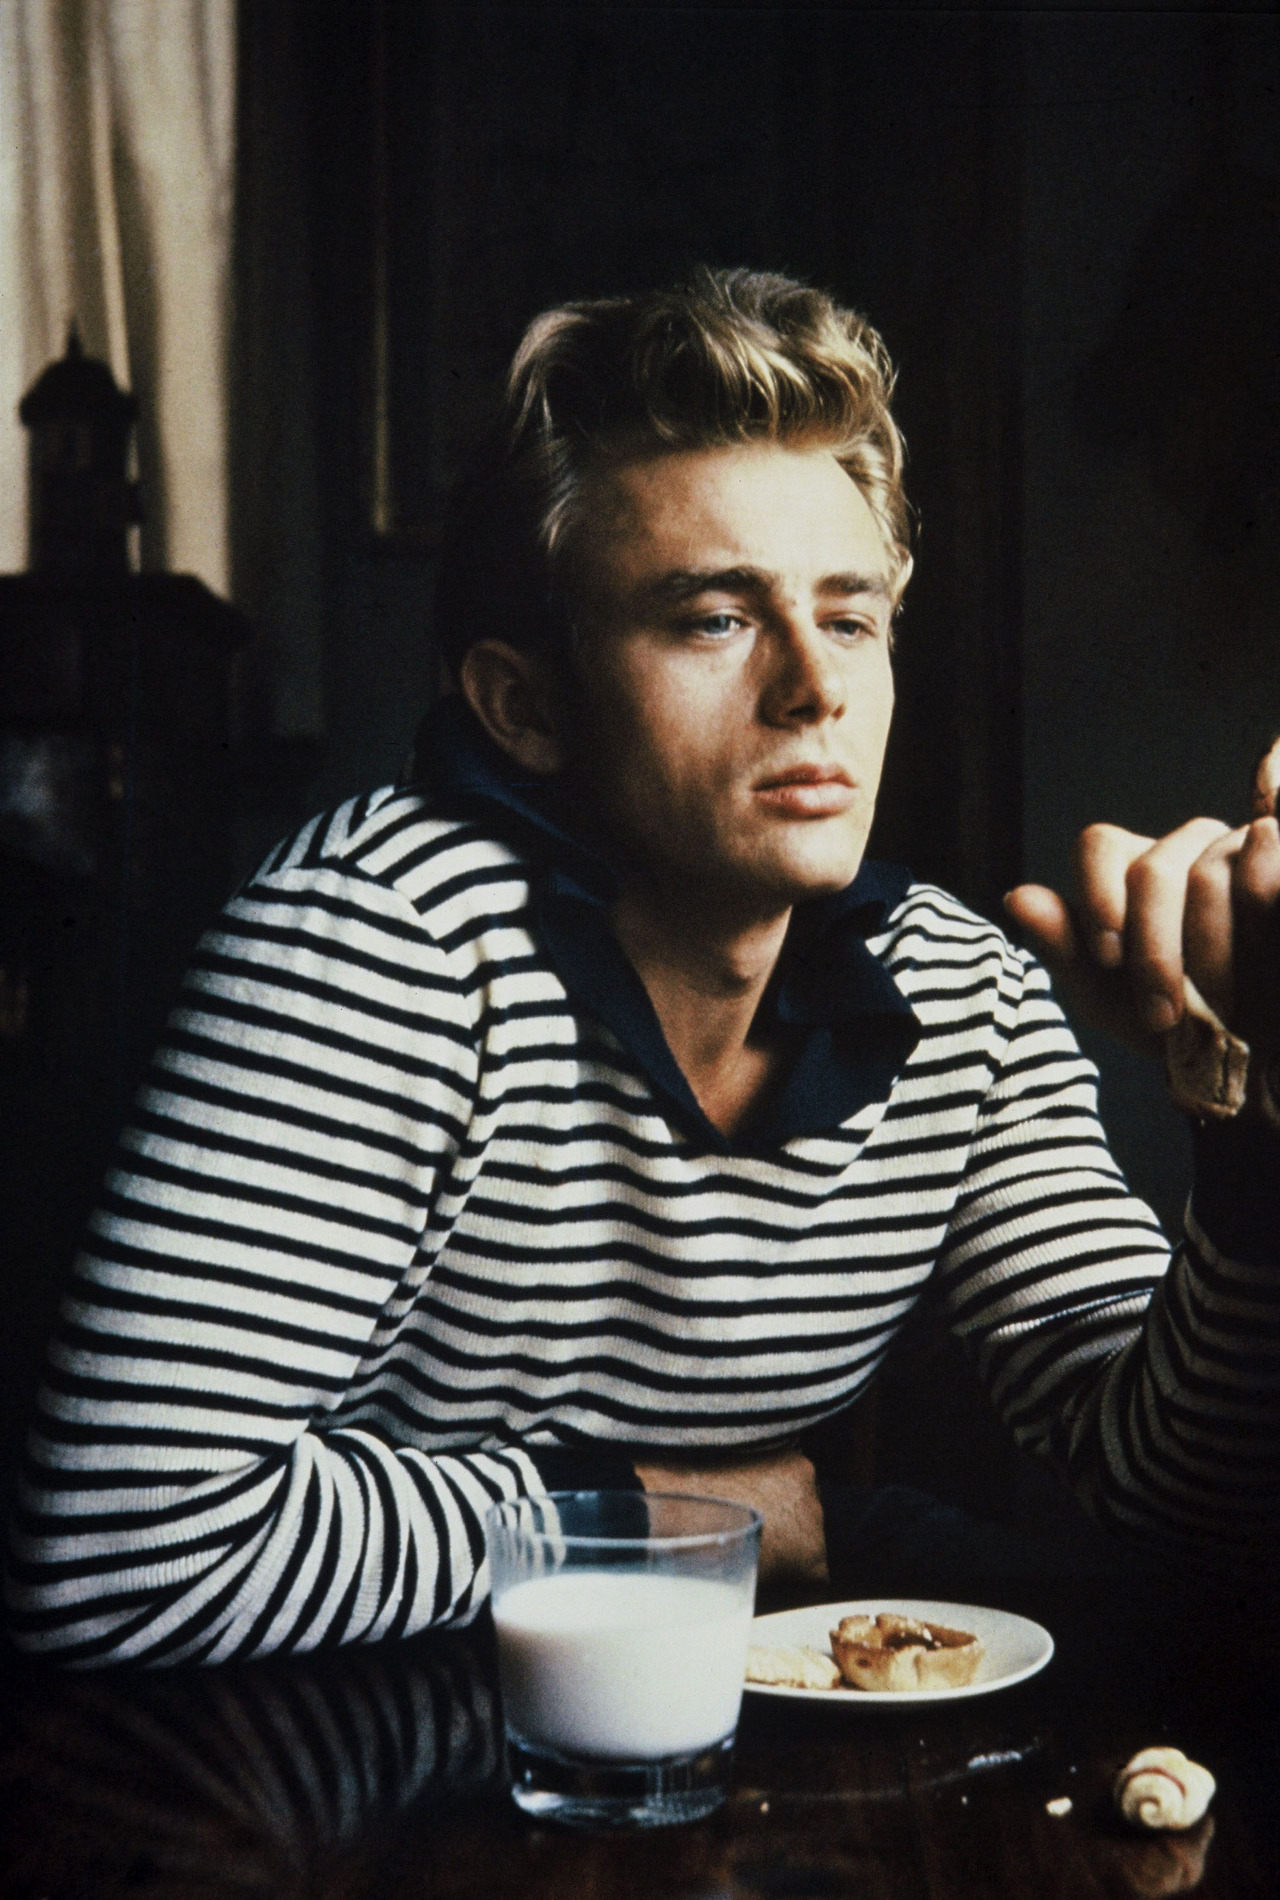 James James Dean Fan Art 34620808 Fanpop